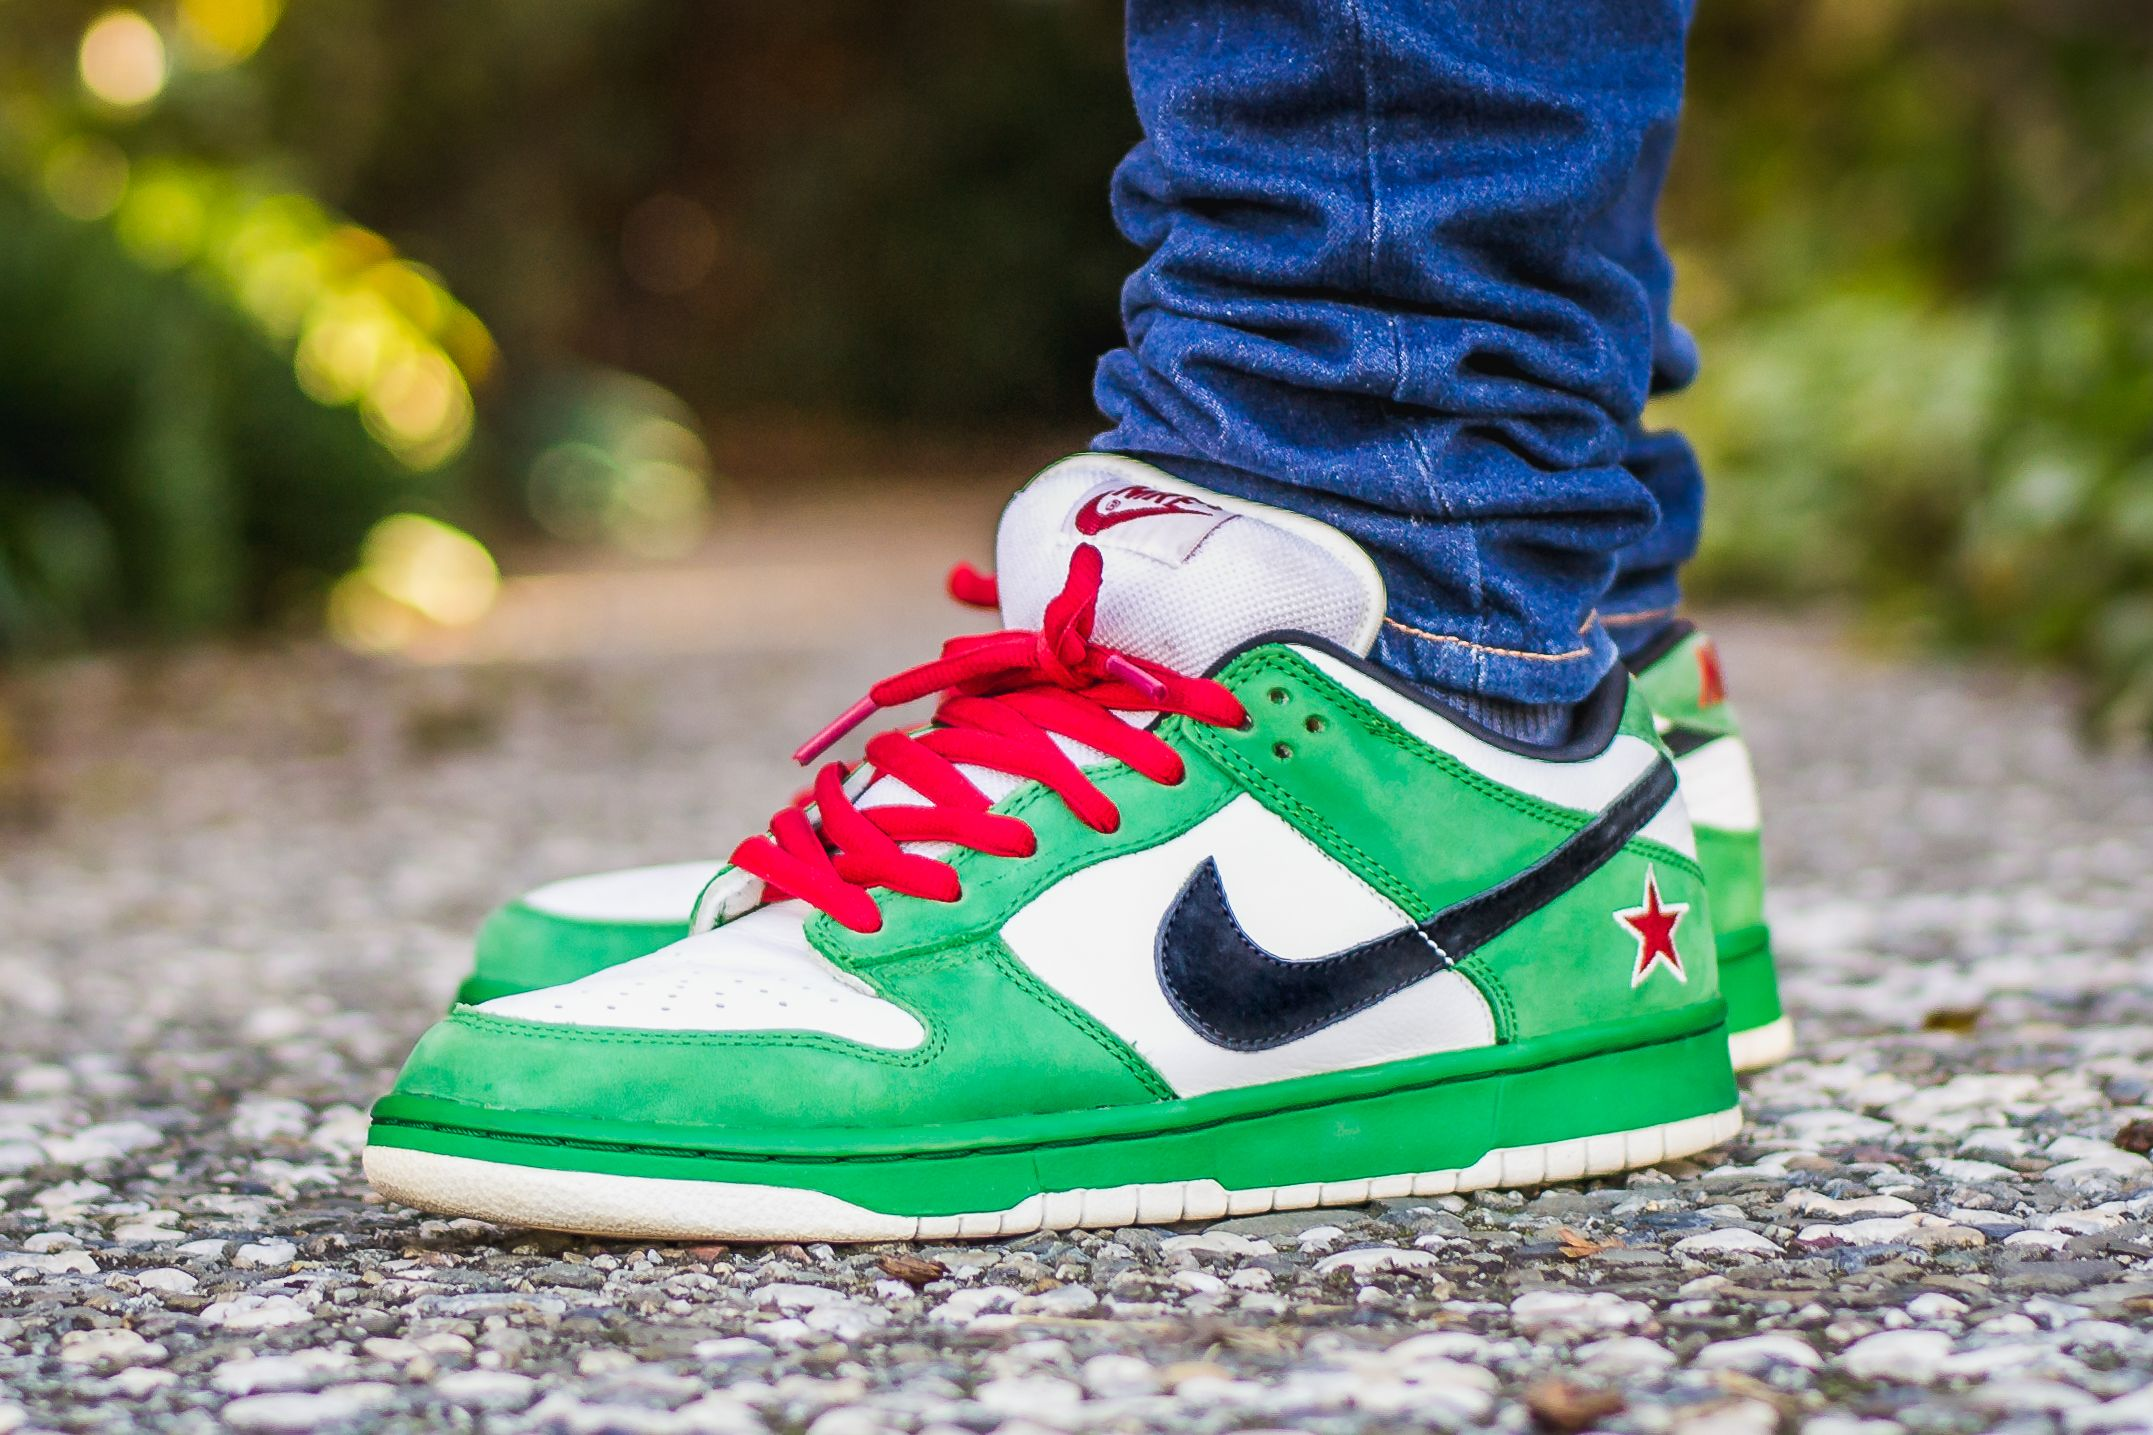 79a56792fce2 WDIWT - See my on foot video review of these Nike Dunk Low SB Heineken +  where to find em